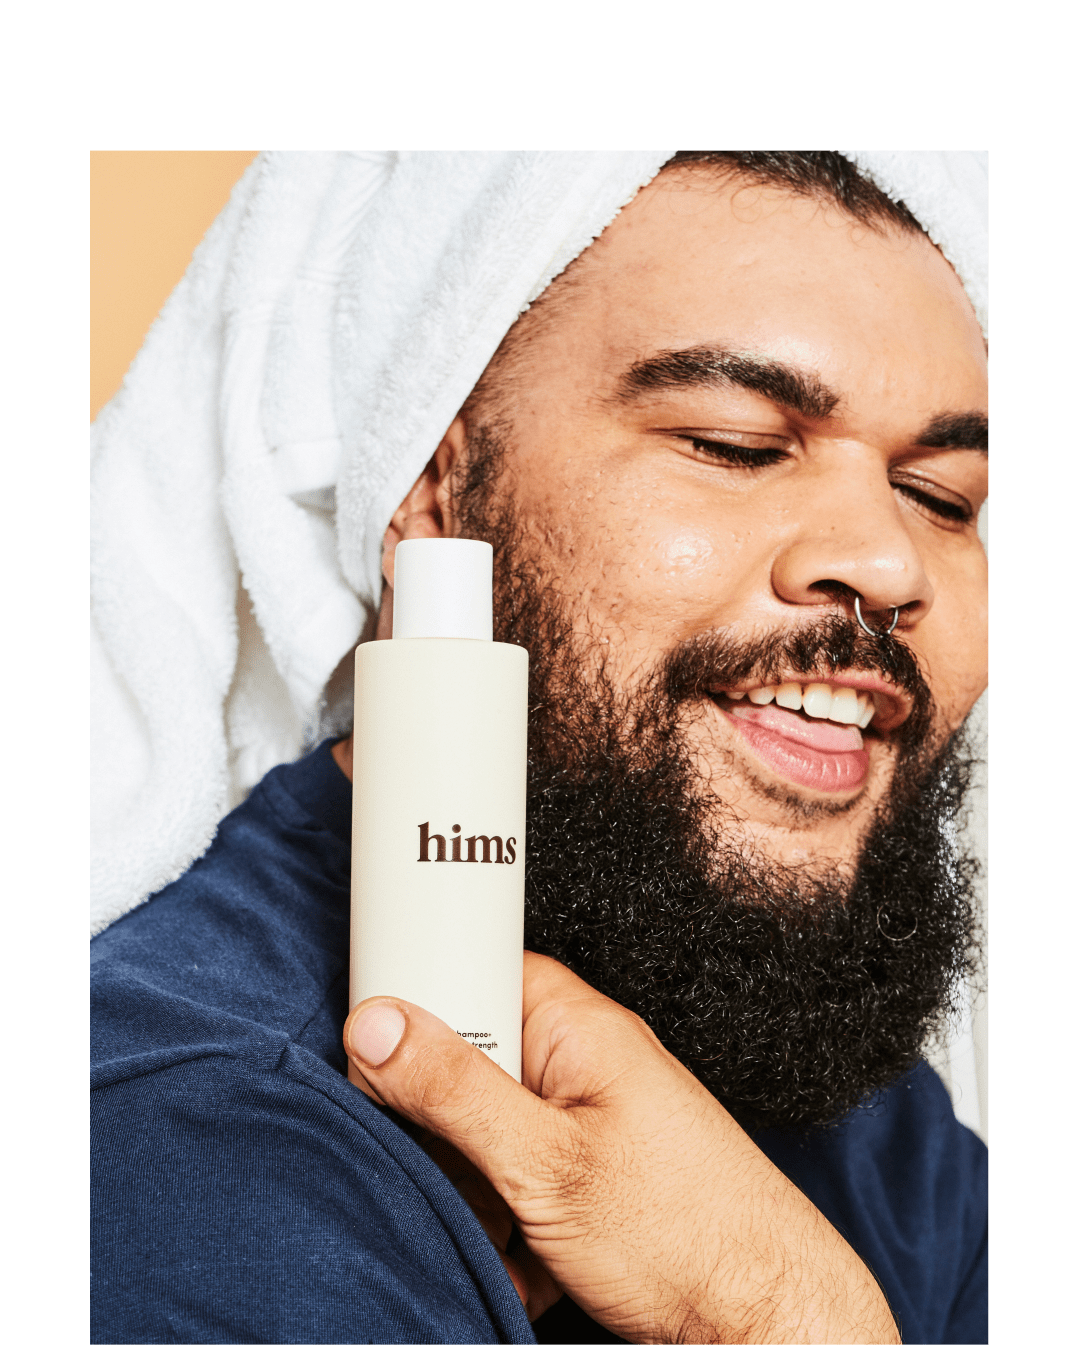 Man showing Hims product